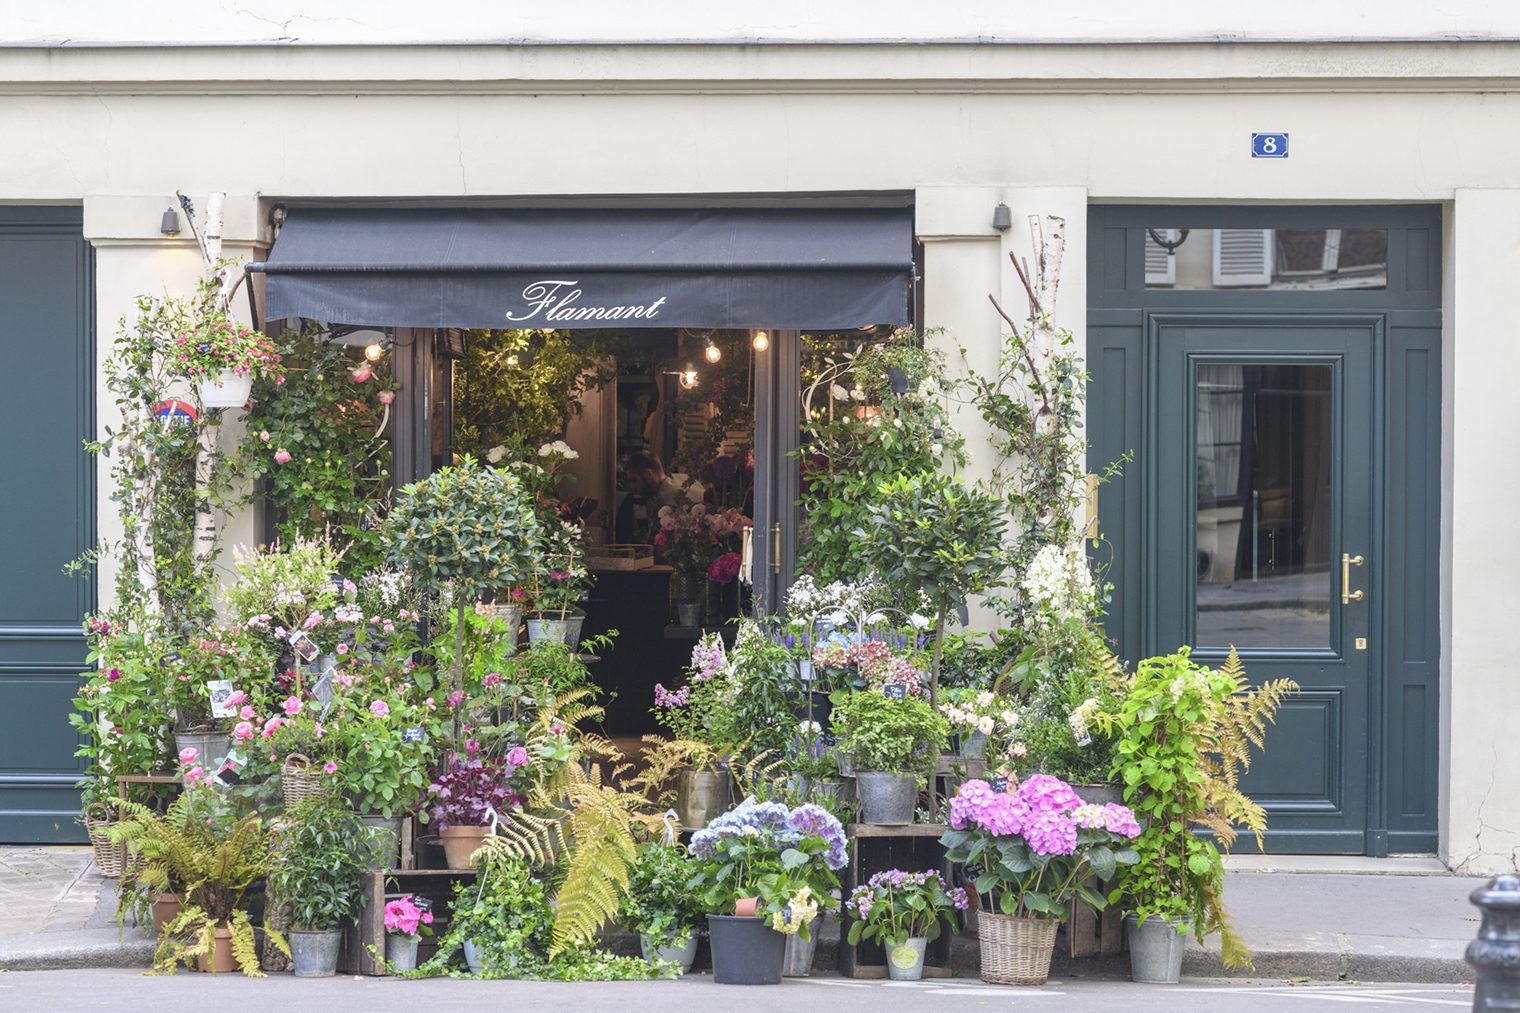 Flowers outside the Flamant Florist Shop in Paris photographed by Georgianna Lane